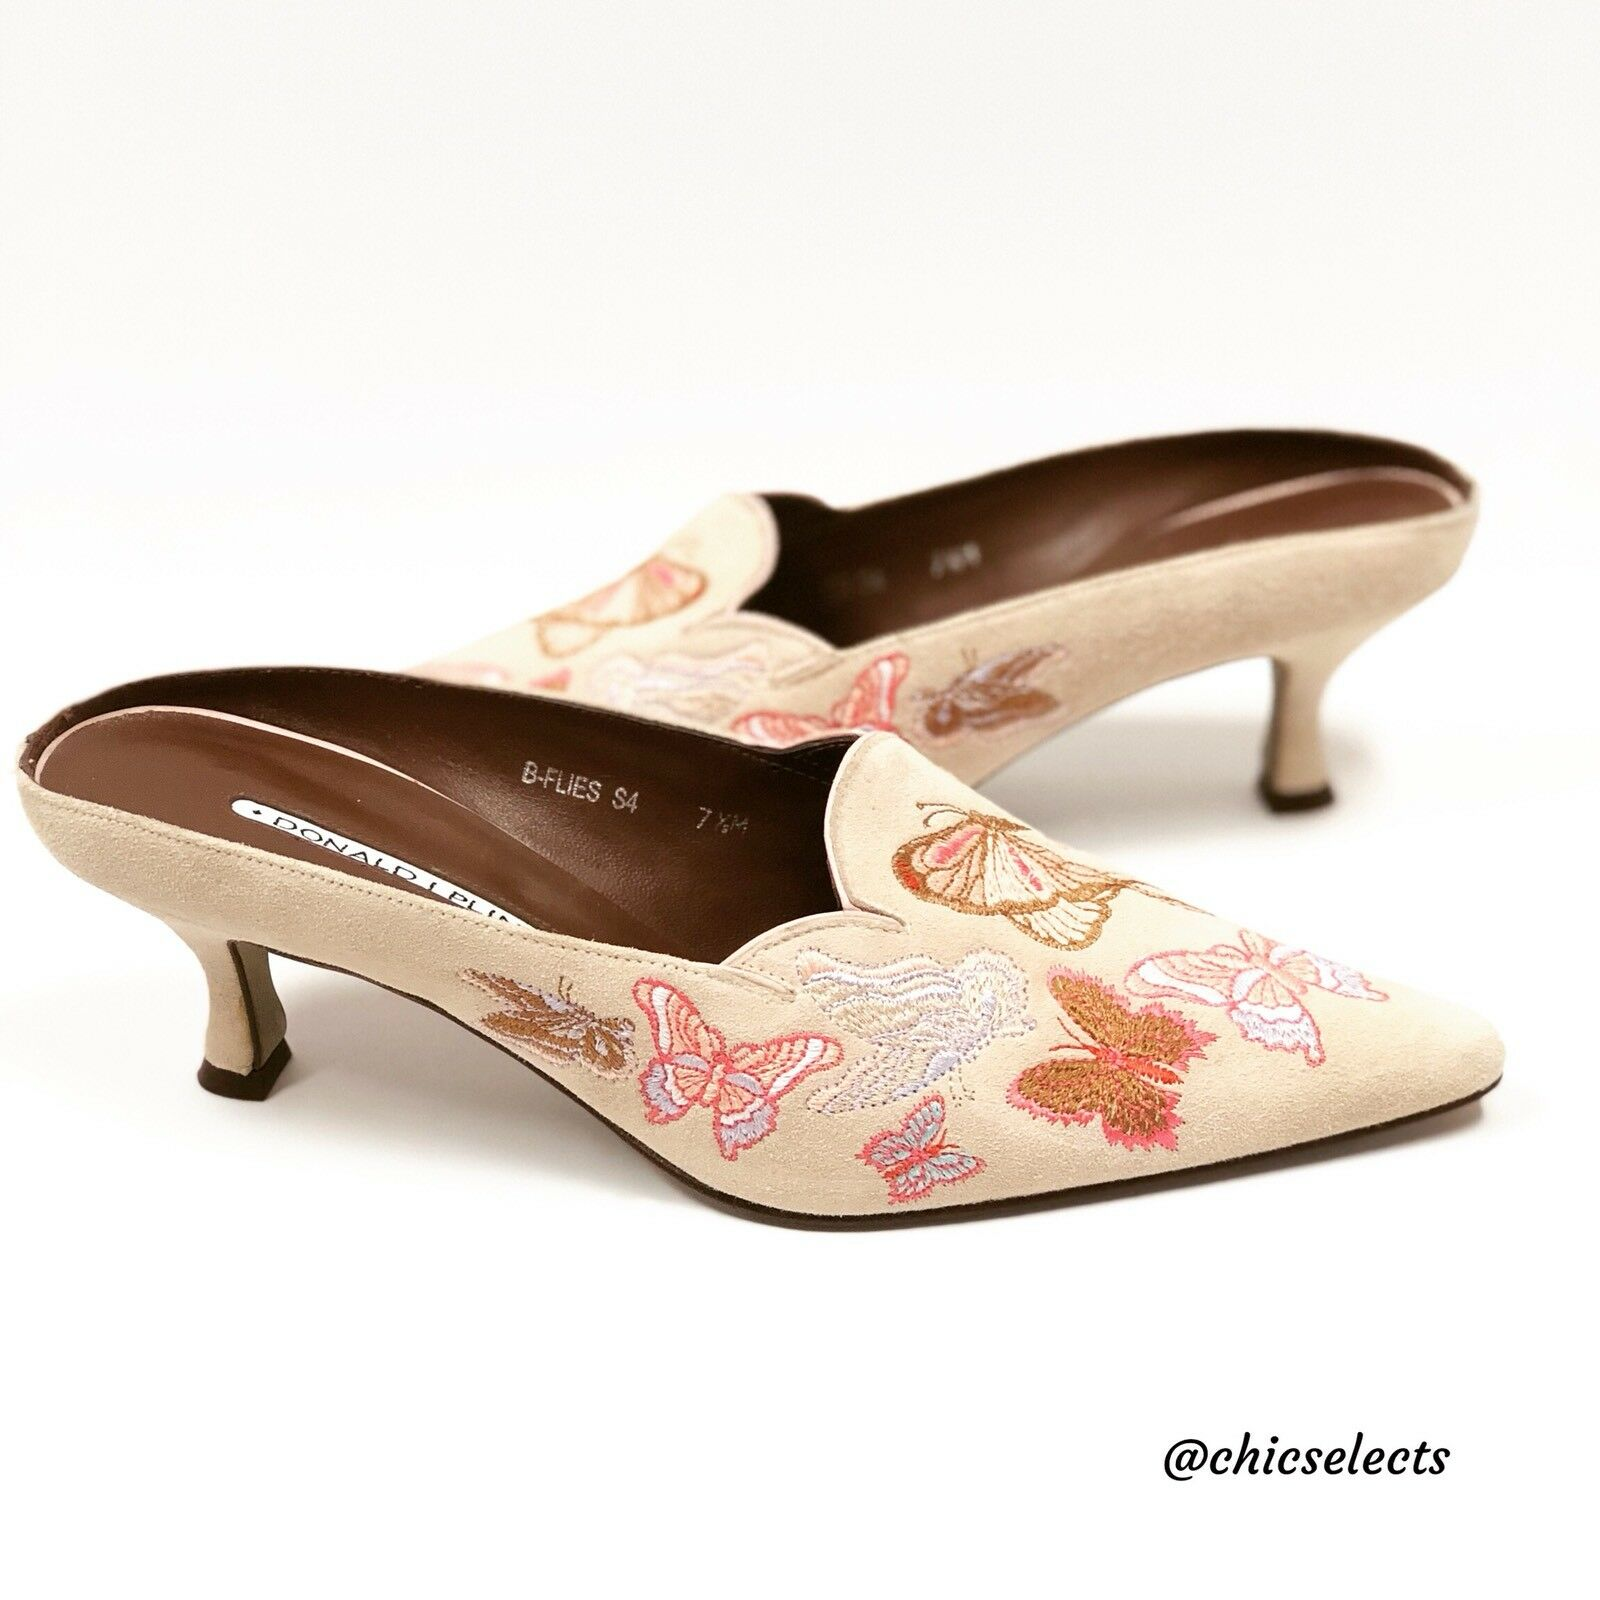 DONALD J PLINER EMBROIDEROT SUEDE MULES SIZE 7.5